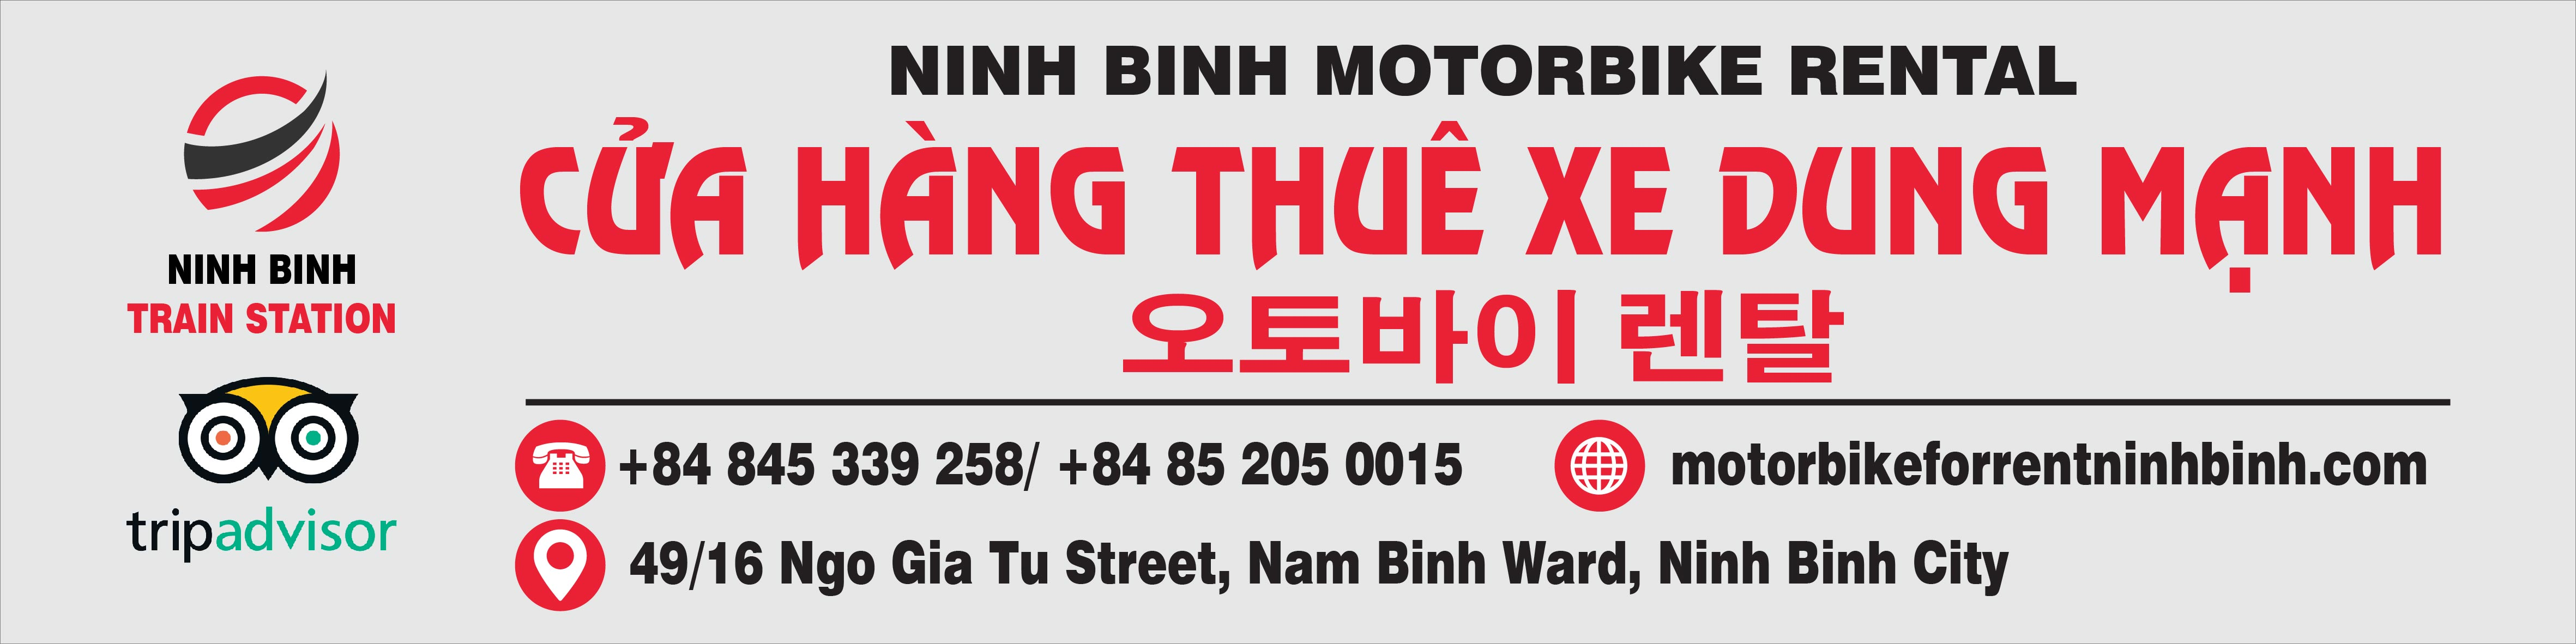 Motorbike For Rent Ninh Binh